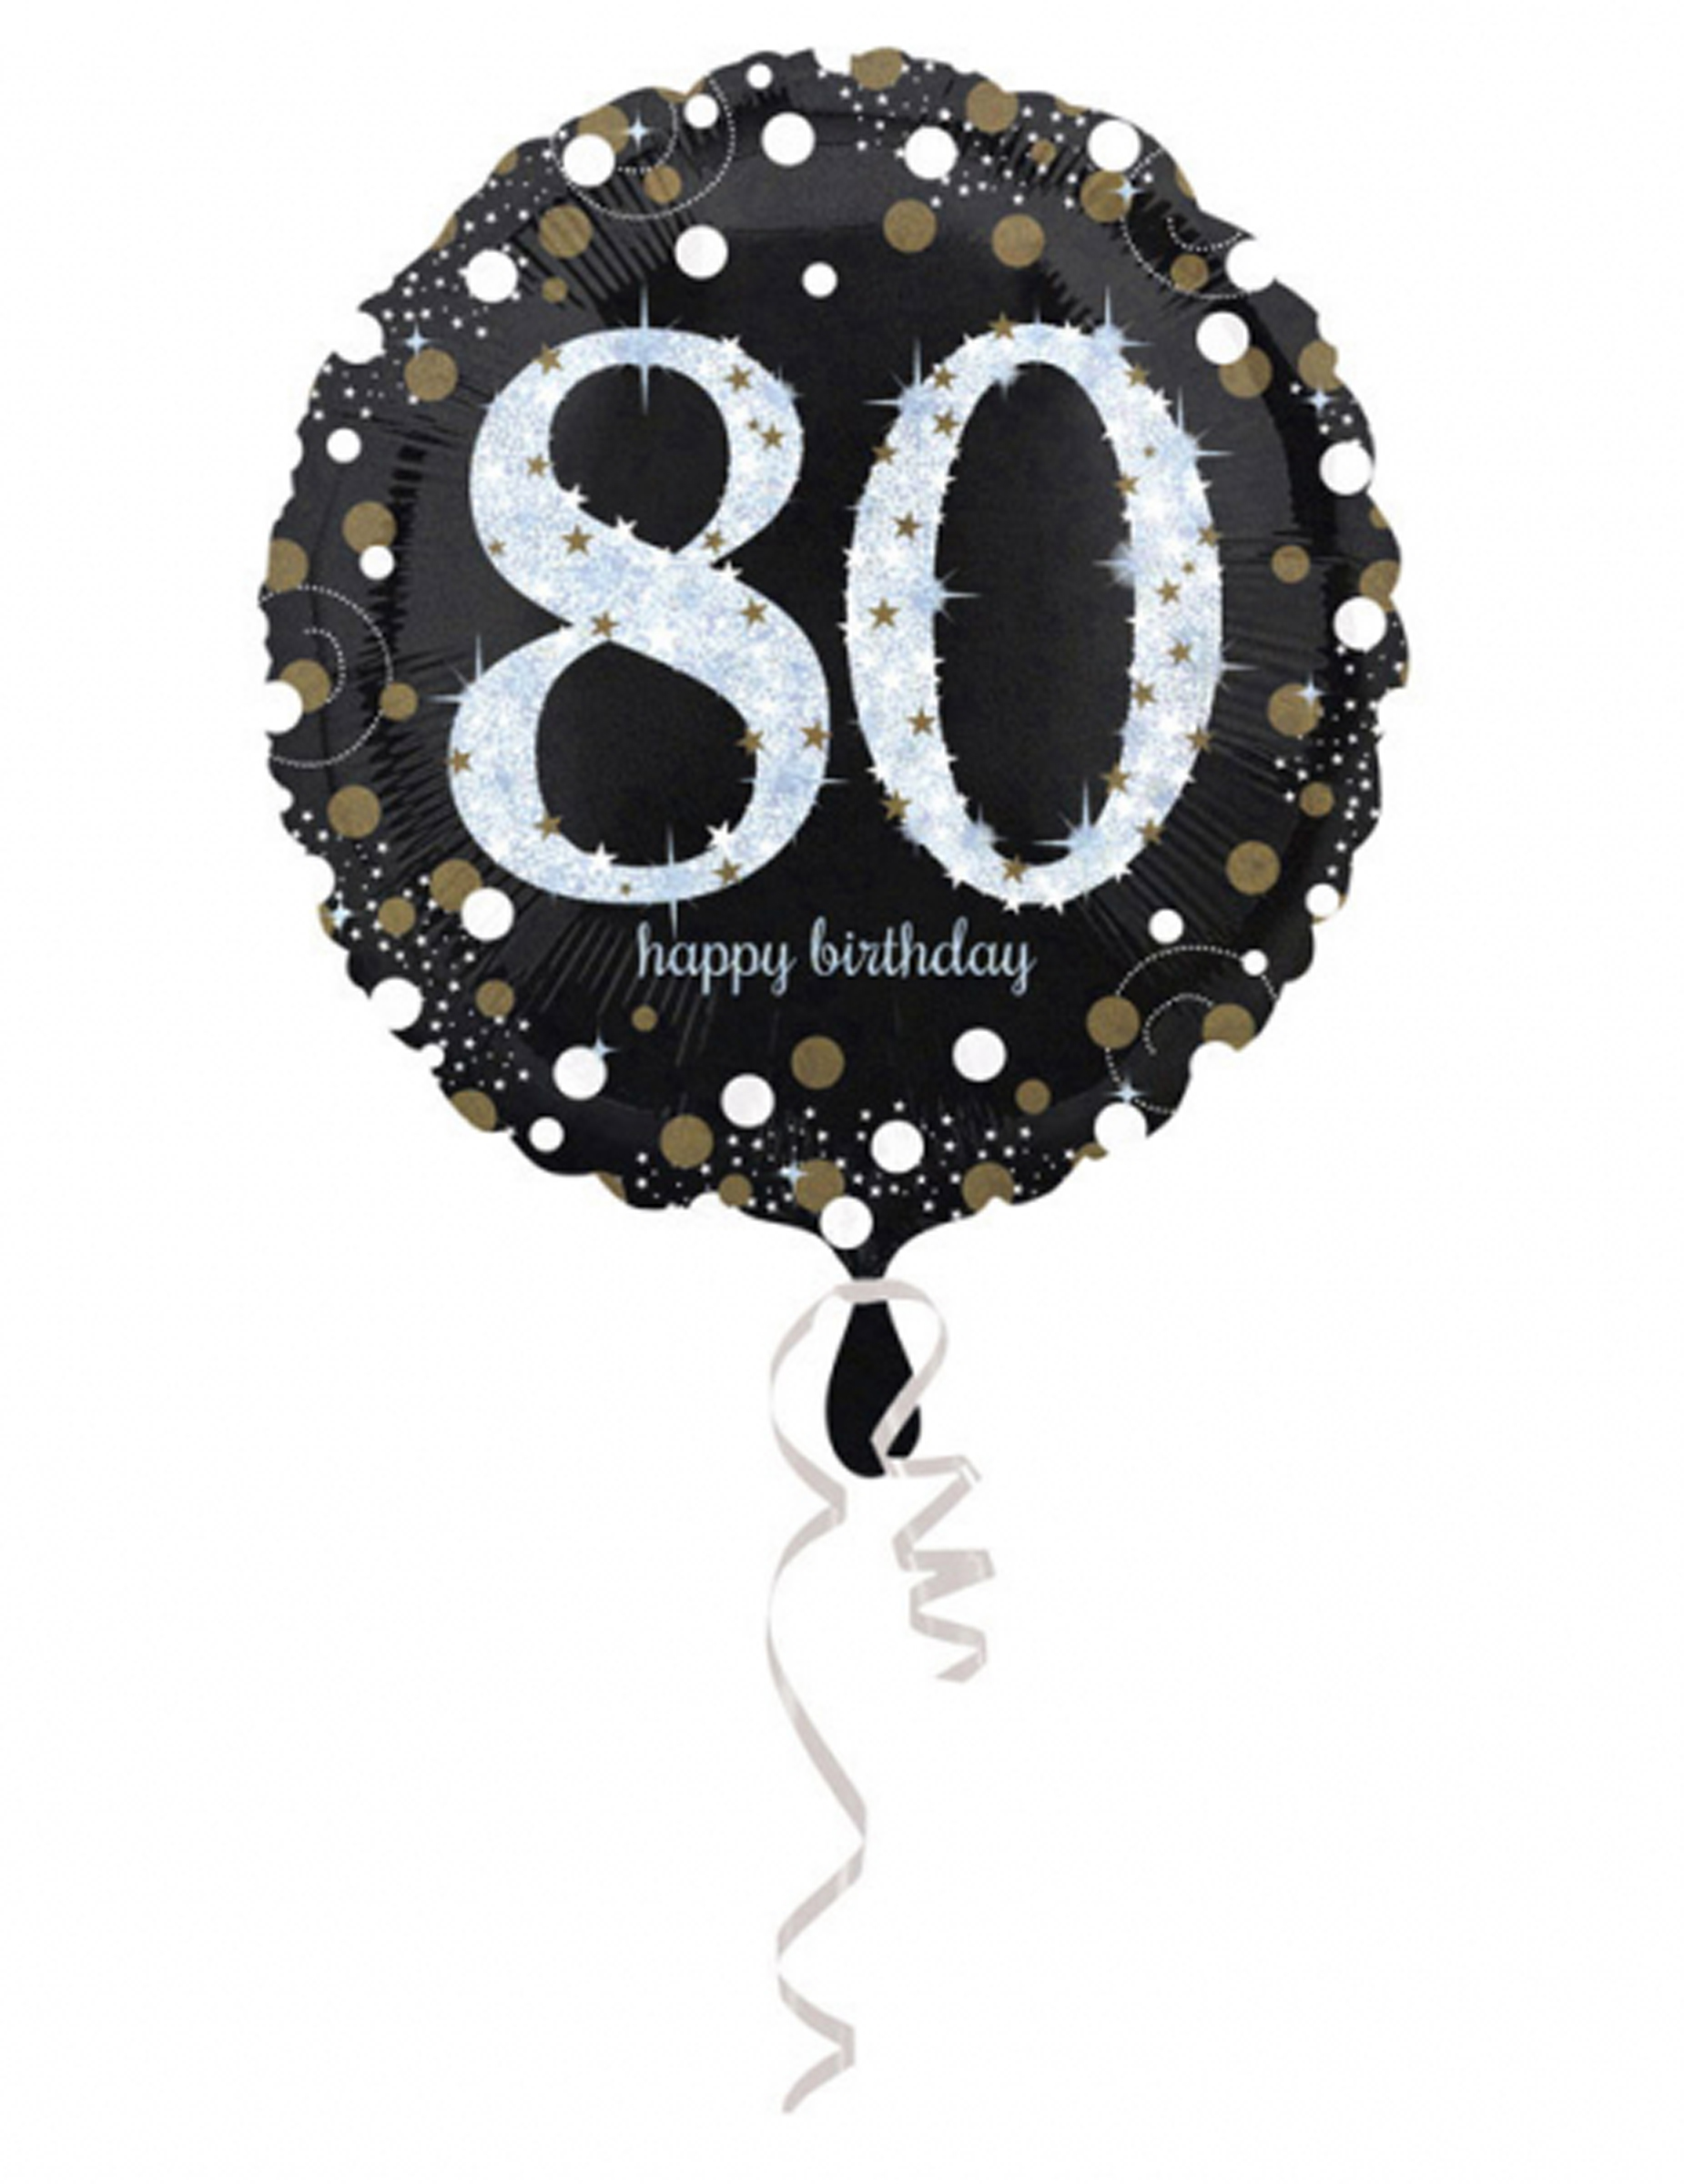 80 jaar happy birthday ballon decoratieen goedkope